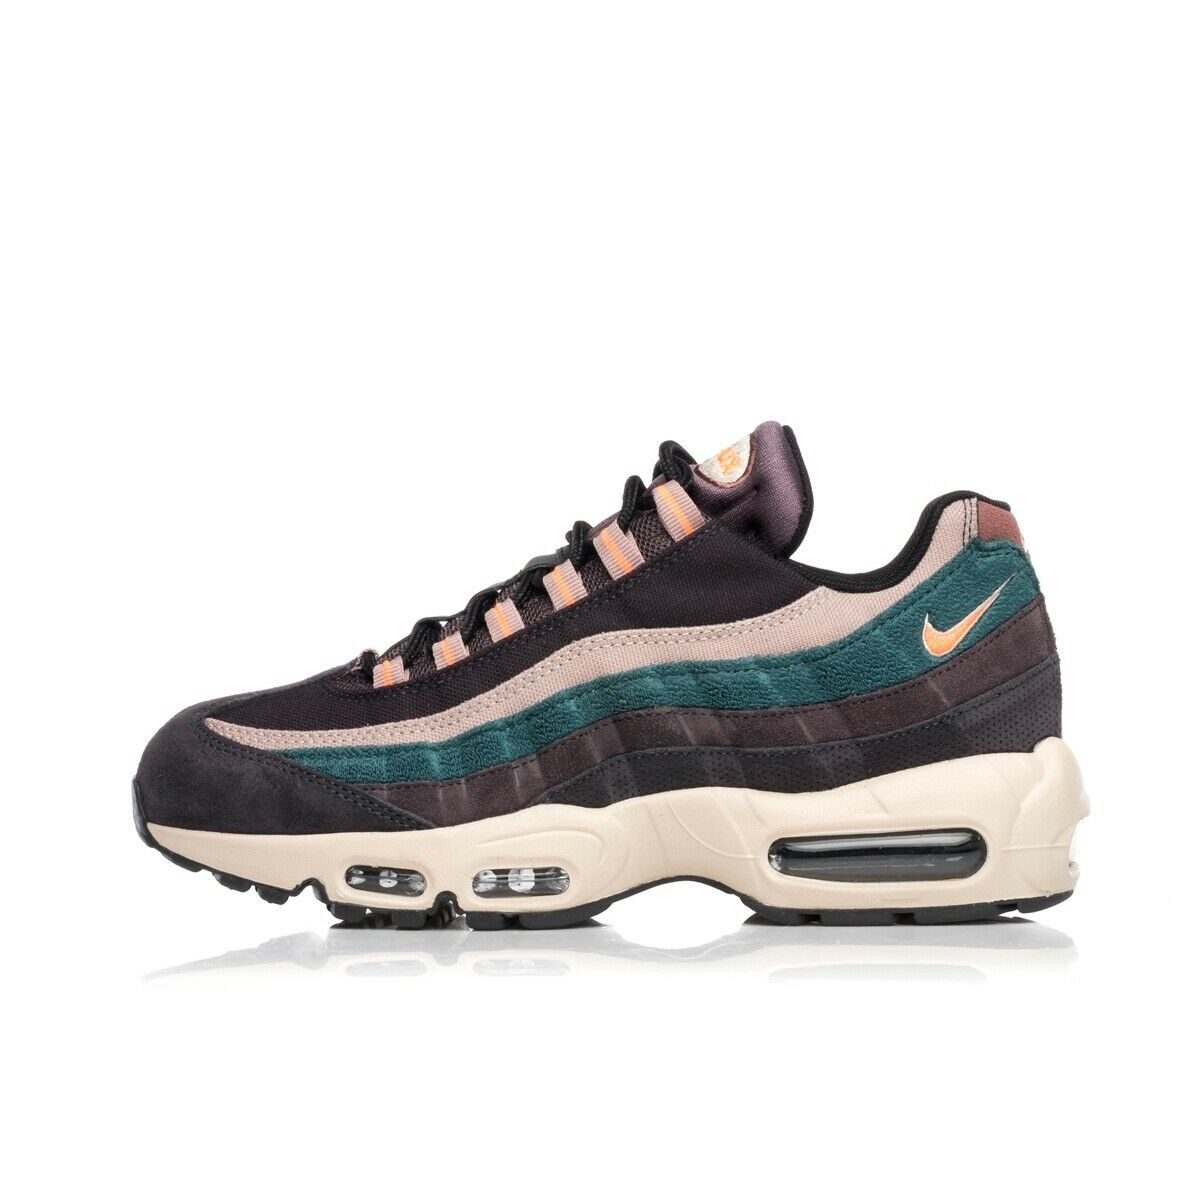 NIKE MAX 95 Premium 538416-018 Bright AIR Mango 97 98 180 1 93 270 reaccionar